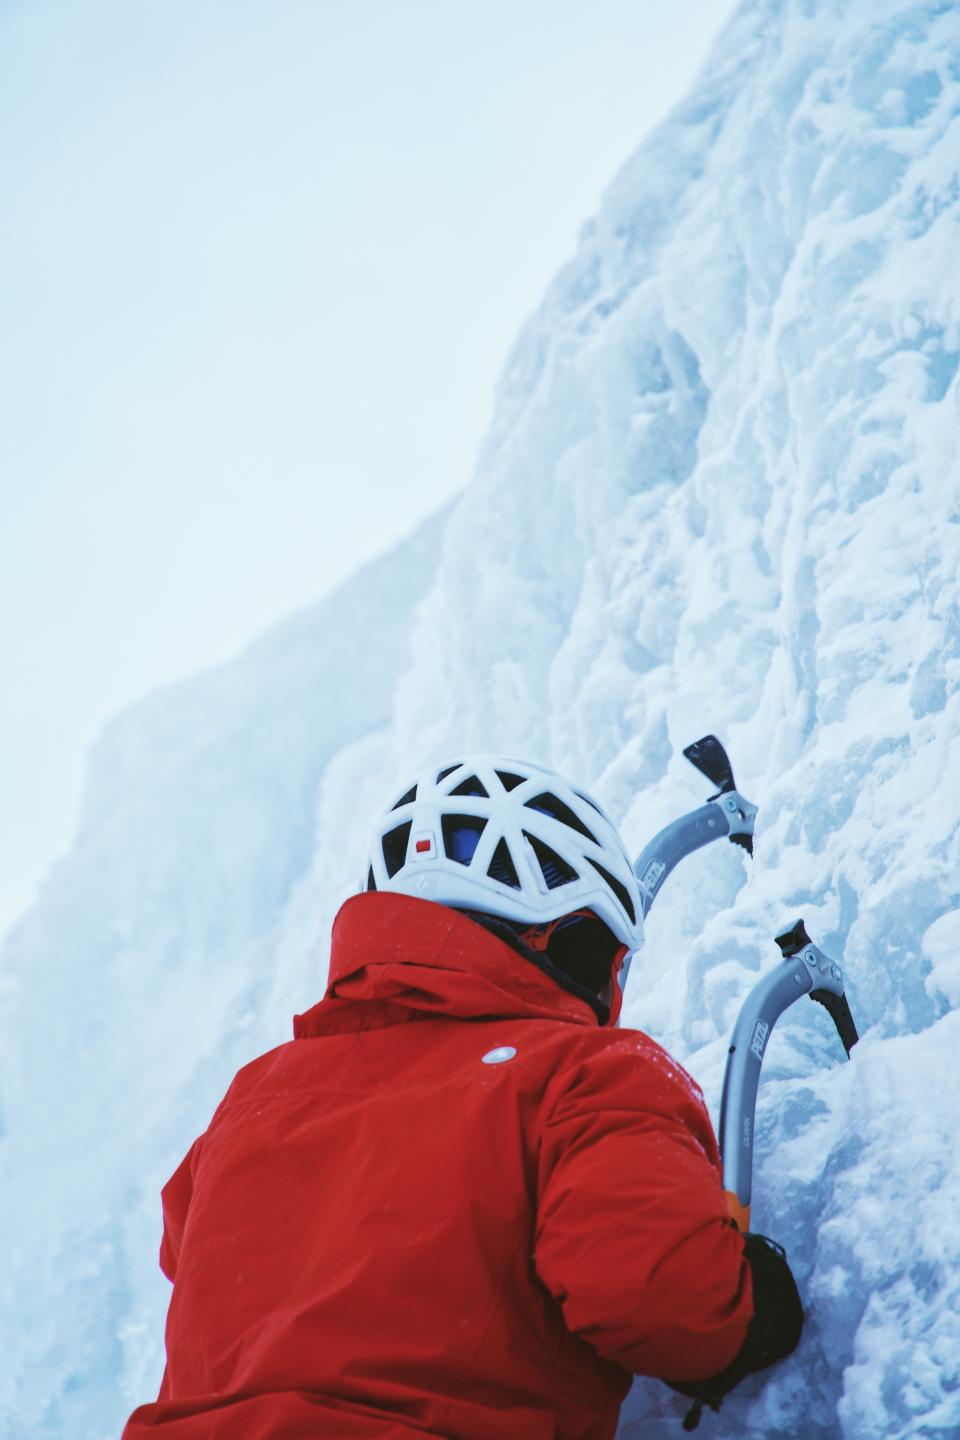 snow winter white cold weather ice nature people man helmet climb mountaineer